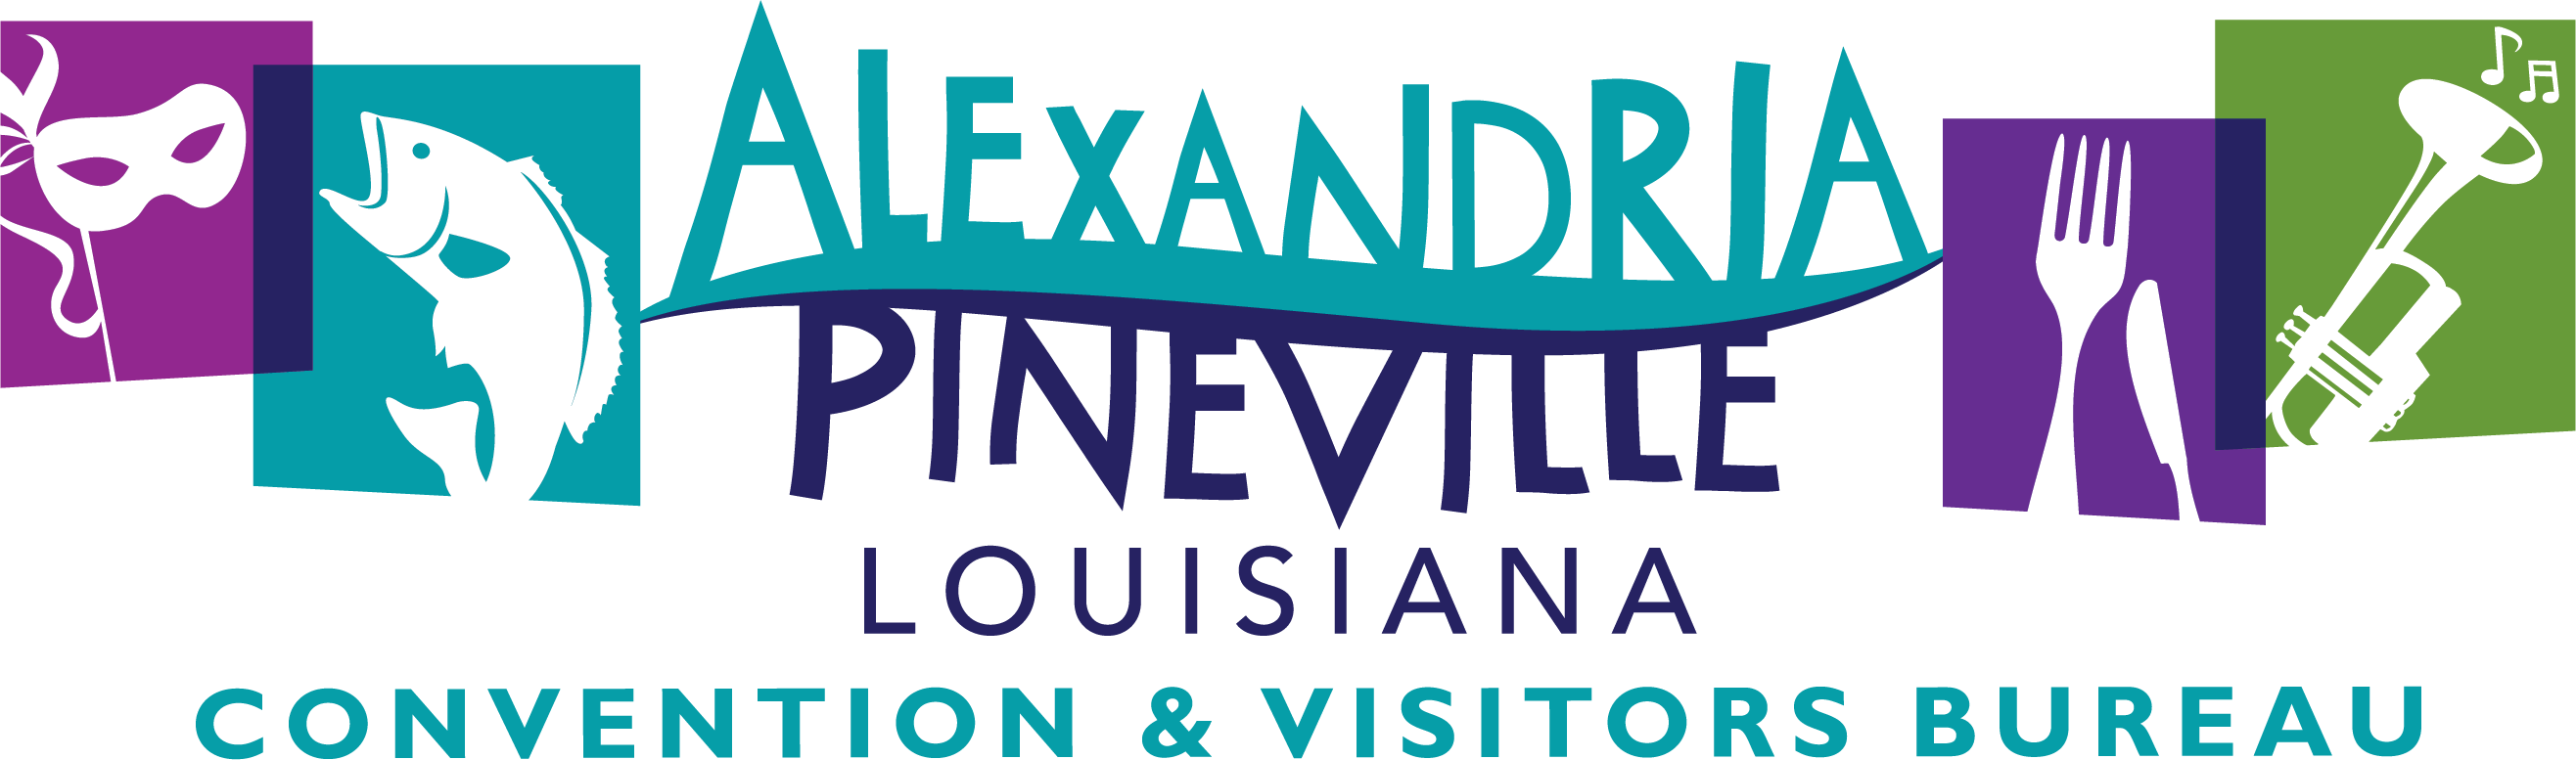 Alexandria Pineville Area Convention & Visitors Bureau